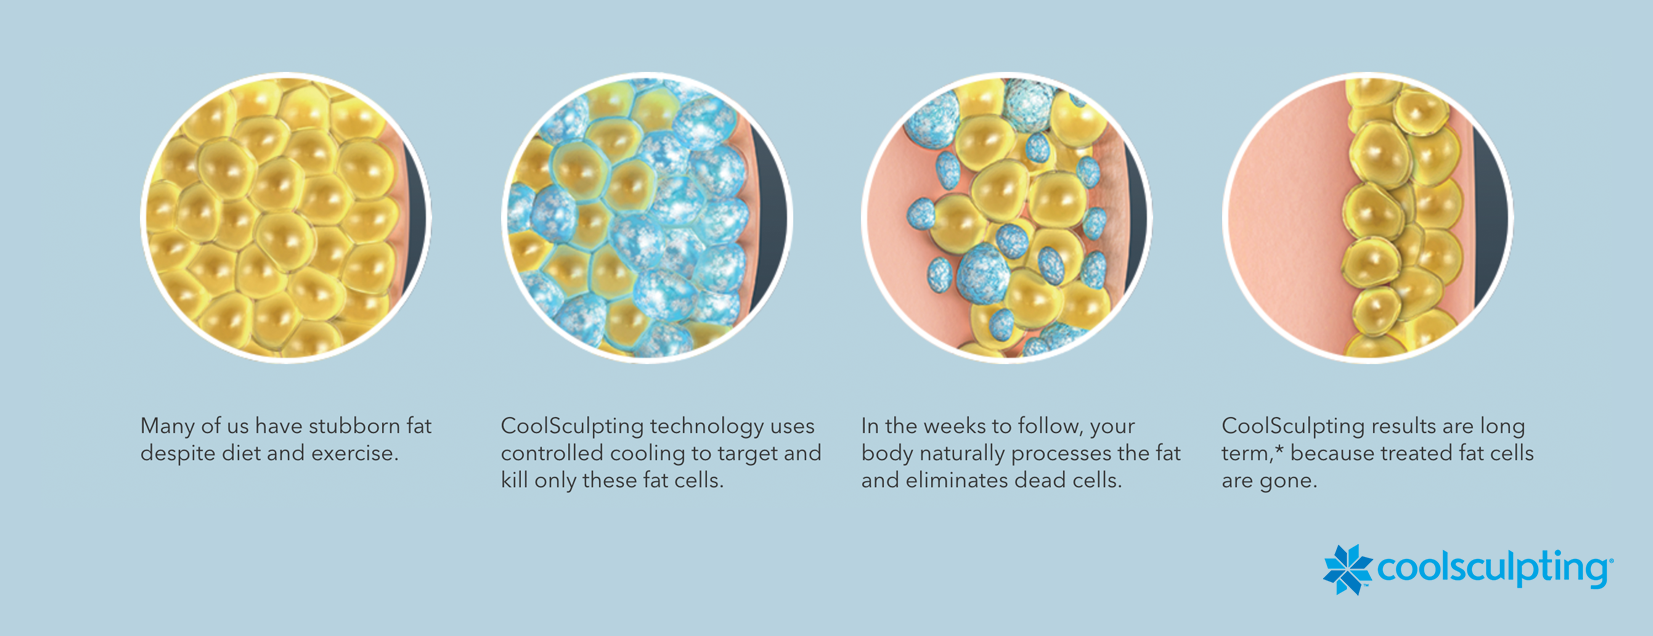 infographic of the coolsculpting process